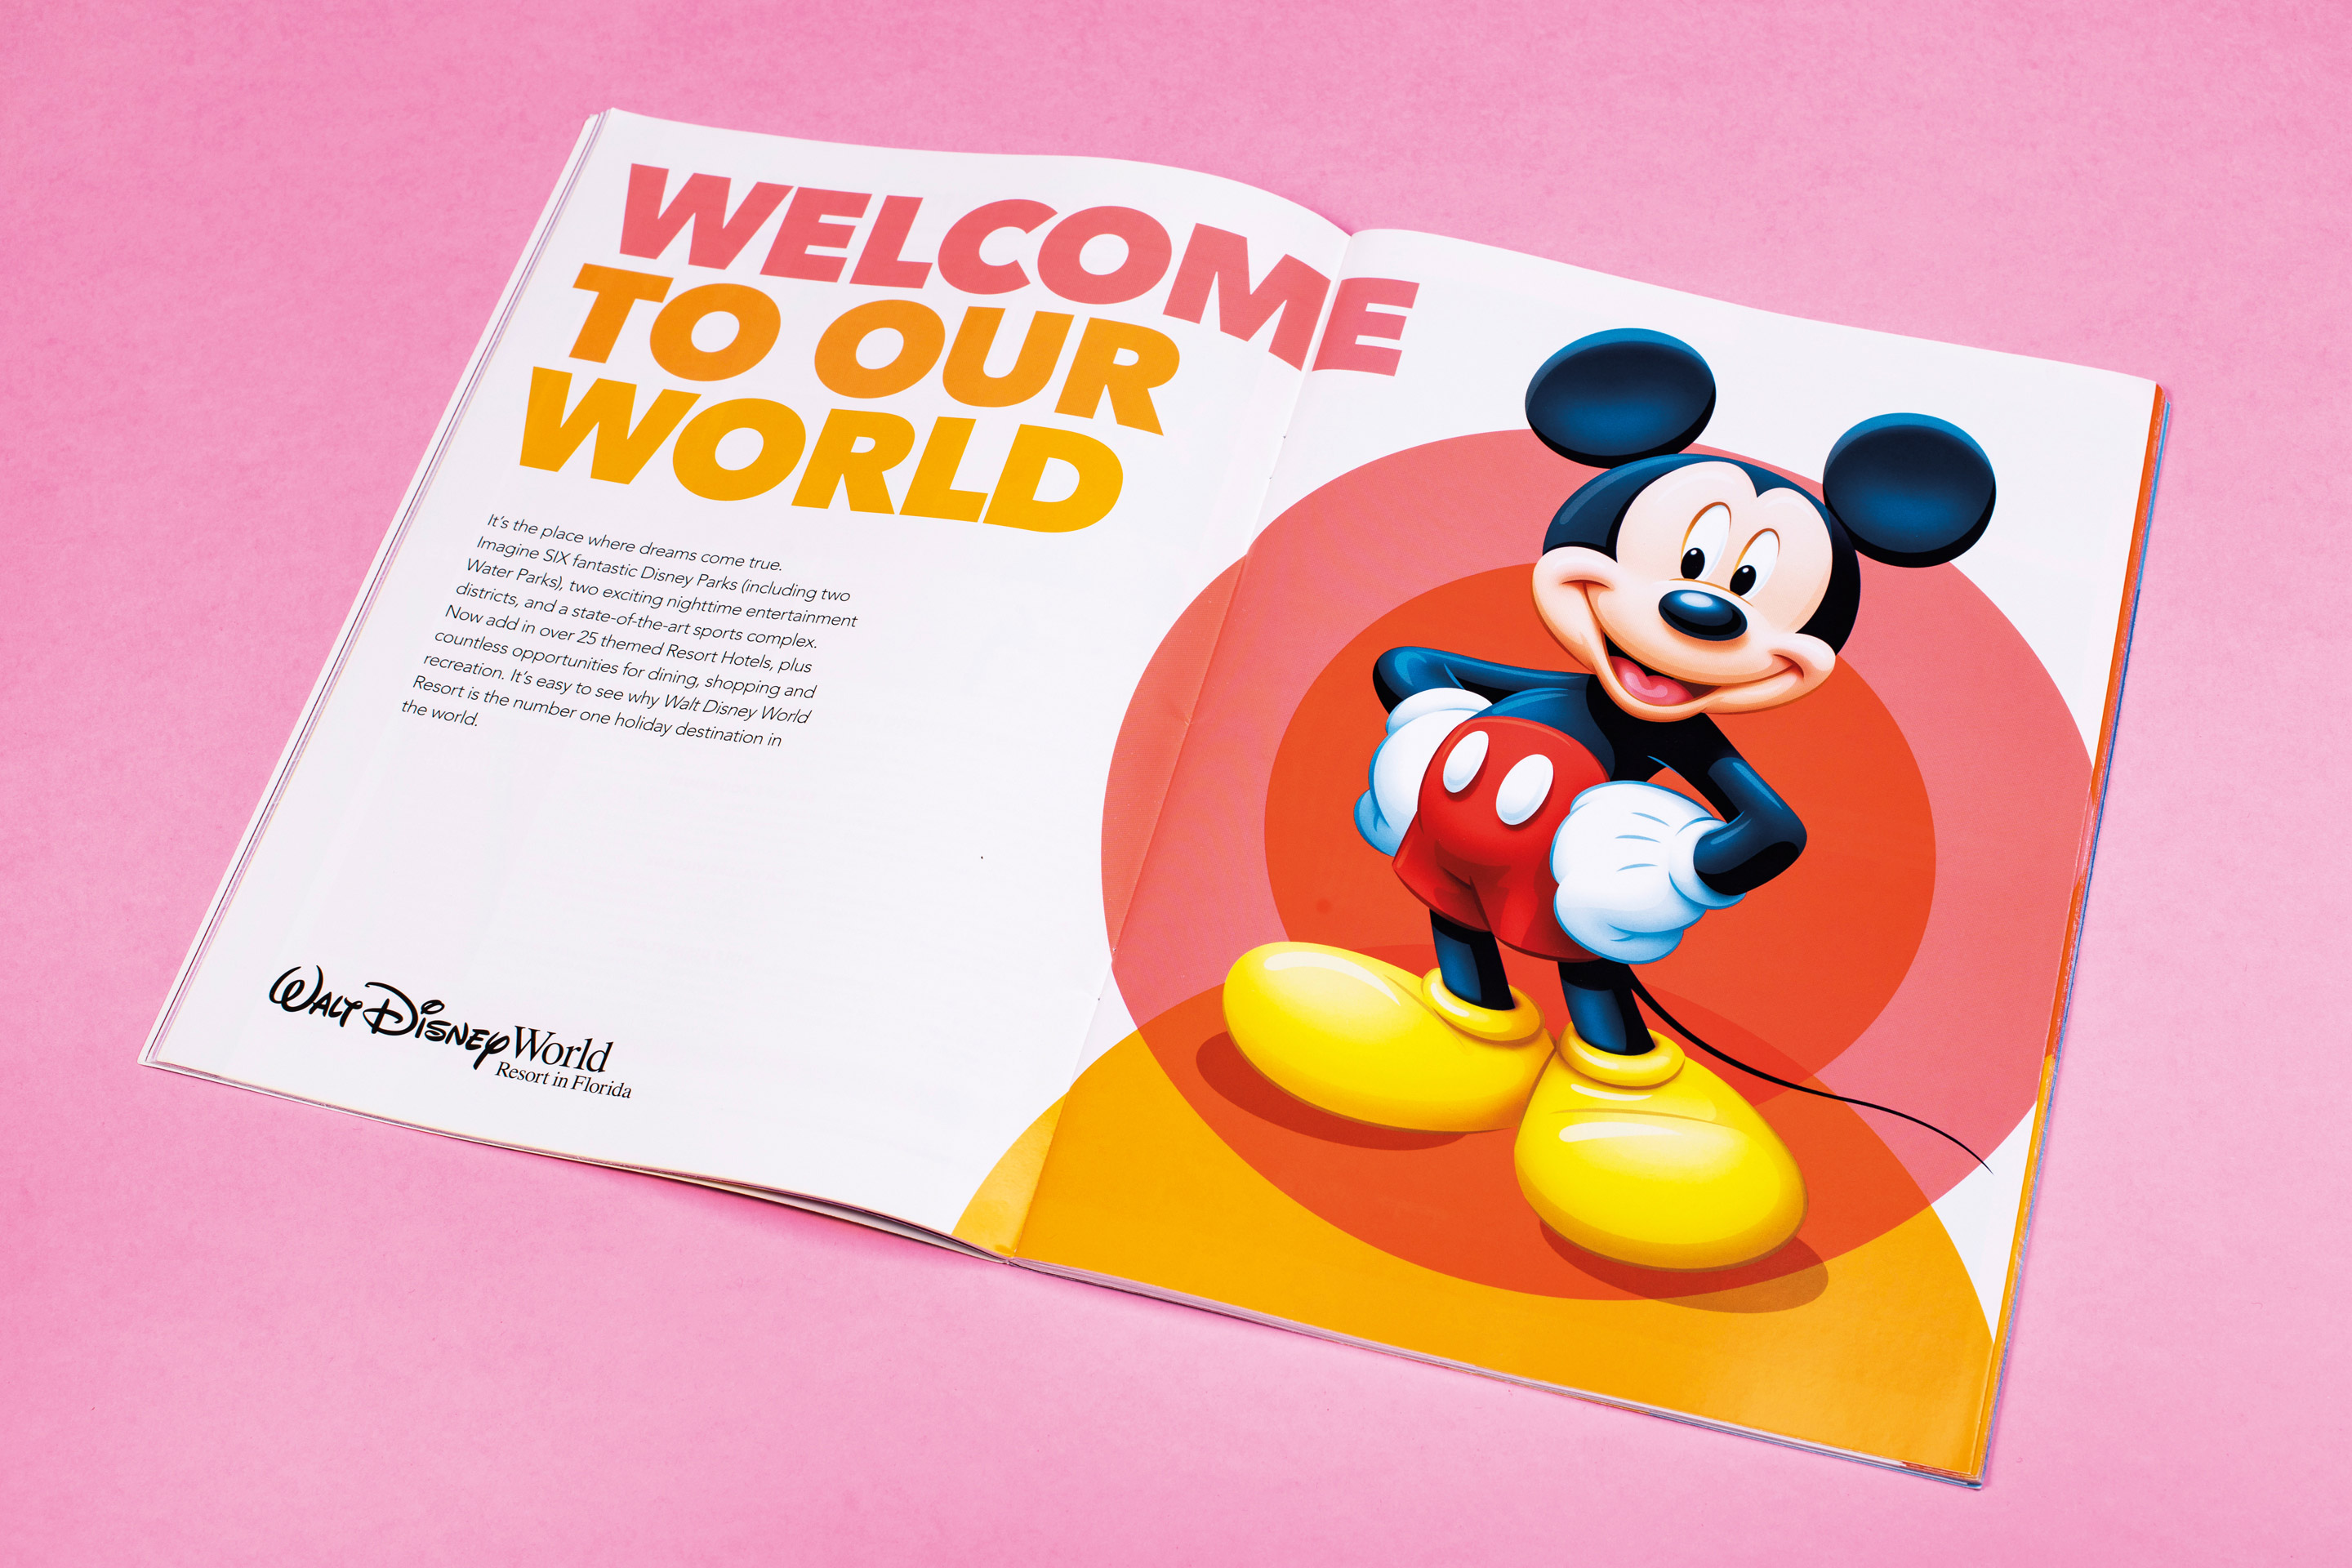 Disney's Travel Agent Guide Mickey Mouse Spread